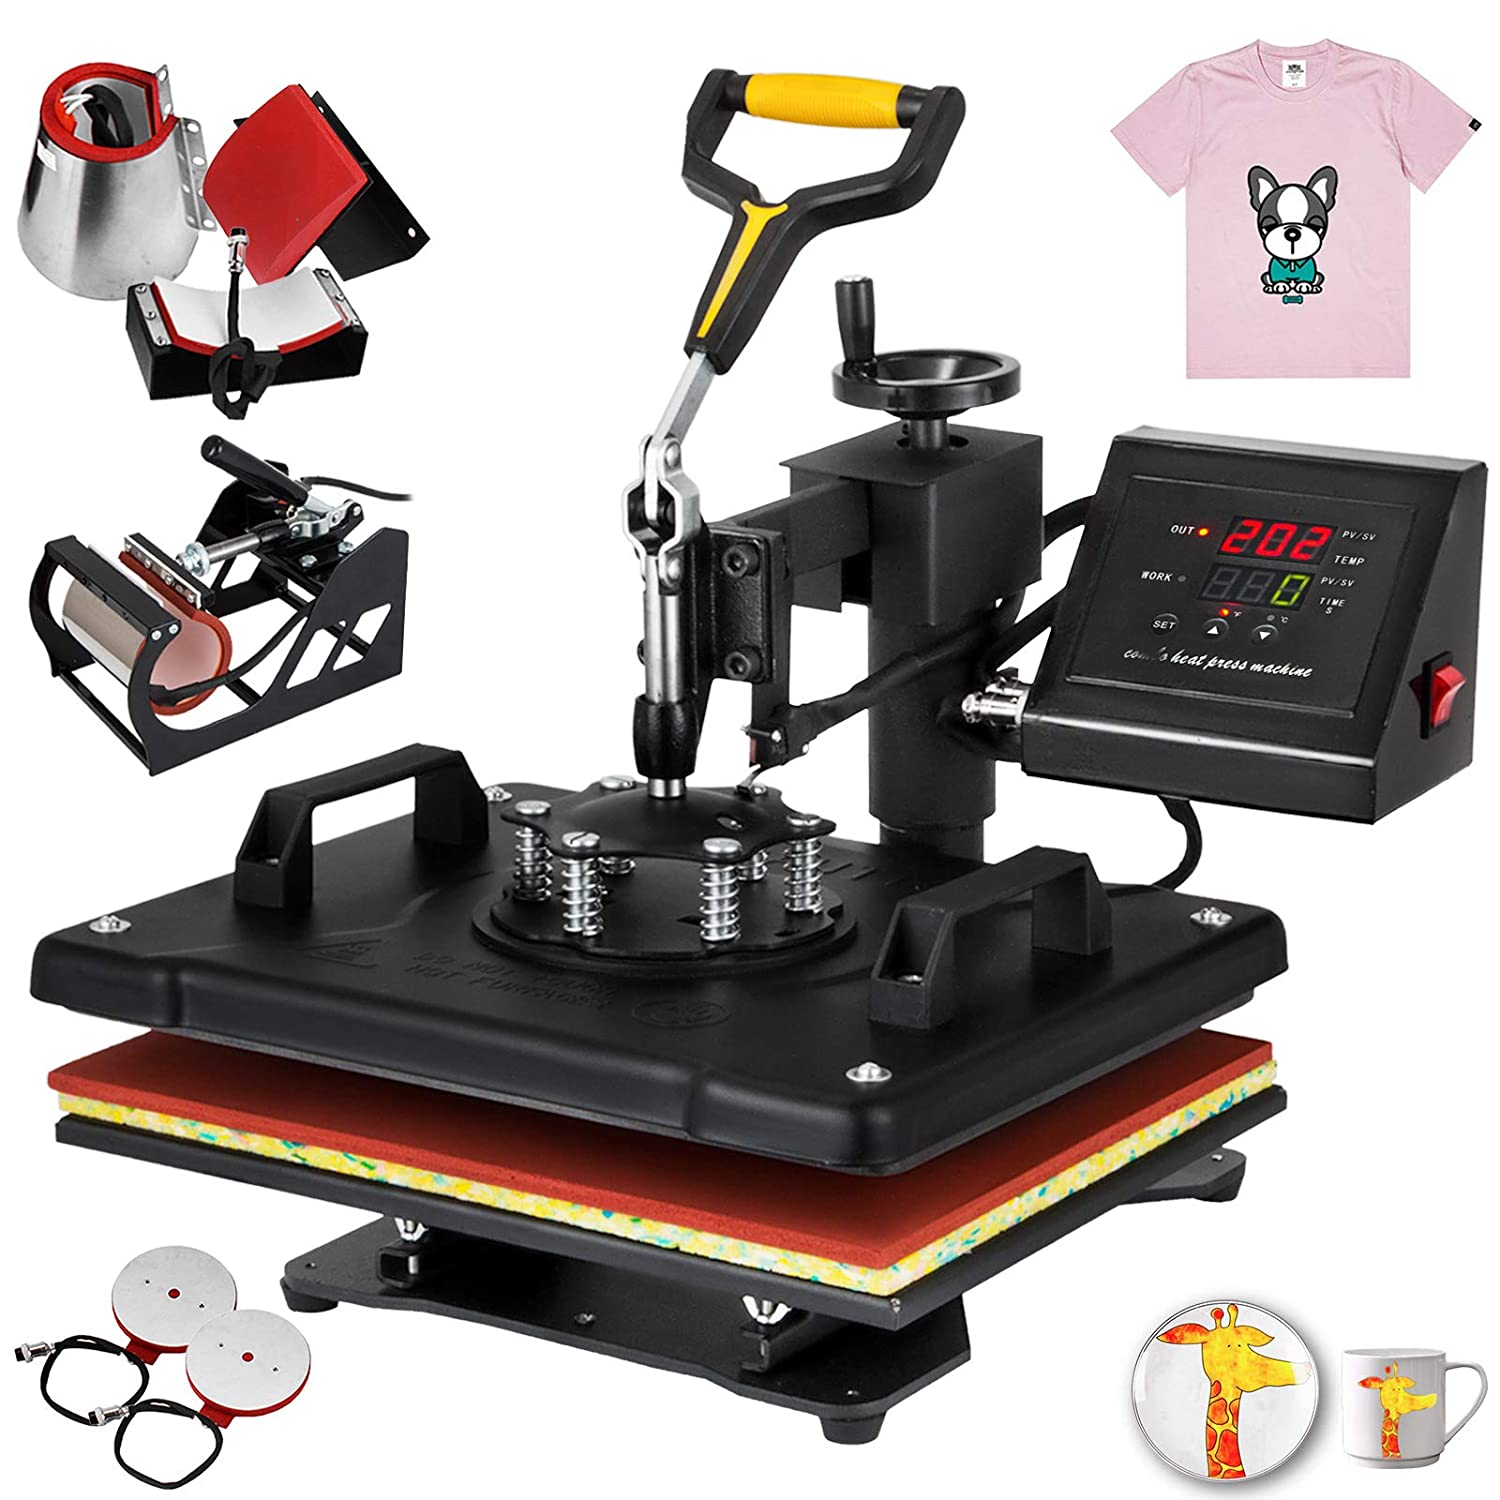 Free T-Shirts and Stickers Mophorn 12x10 Inch Heat Press 8 in 1 Swing Away Heat Press Machine Multifunction Heat Transfer Machine for Shirt Plate Mug Hat Cup